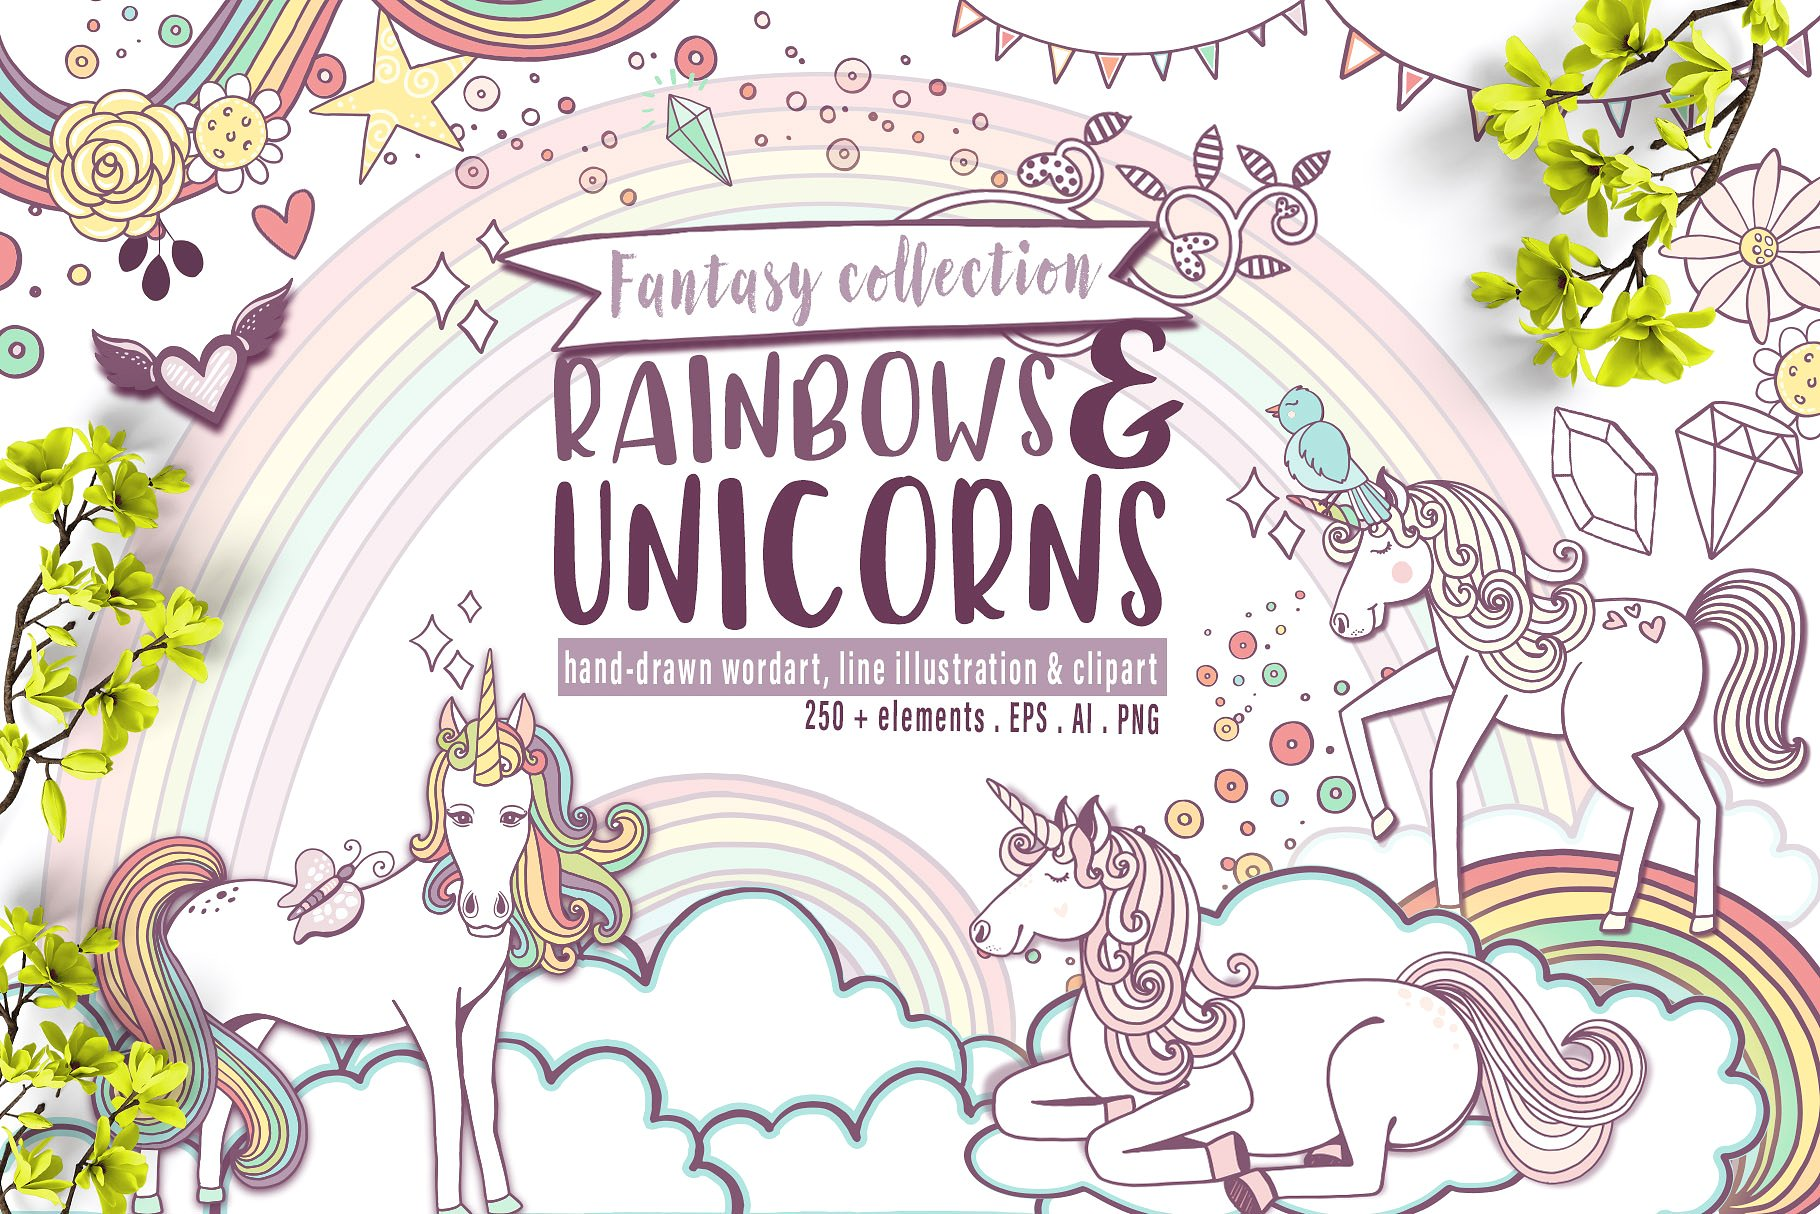 cm-unicorn-rainbows-09-long-lineart-.jpg